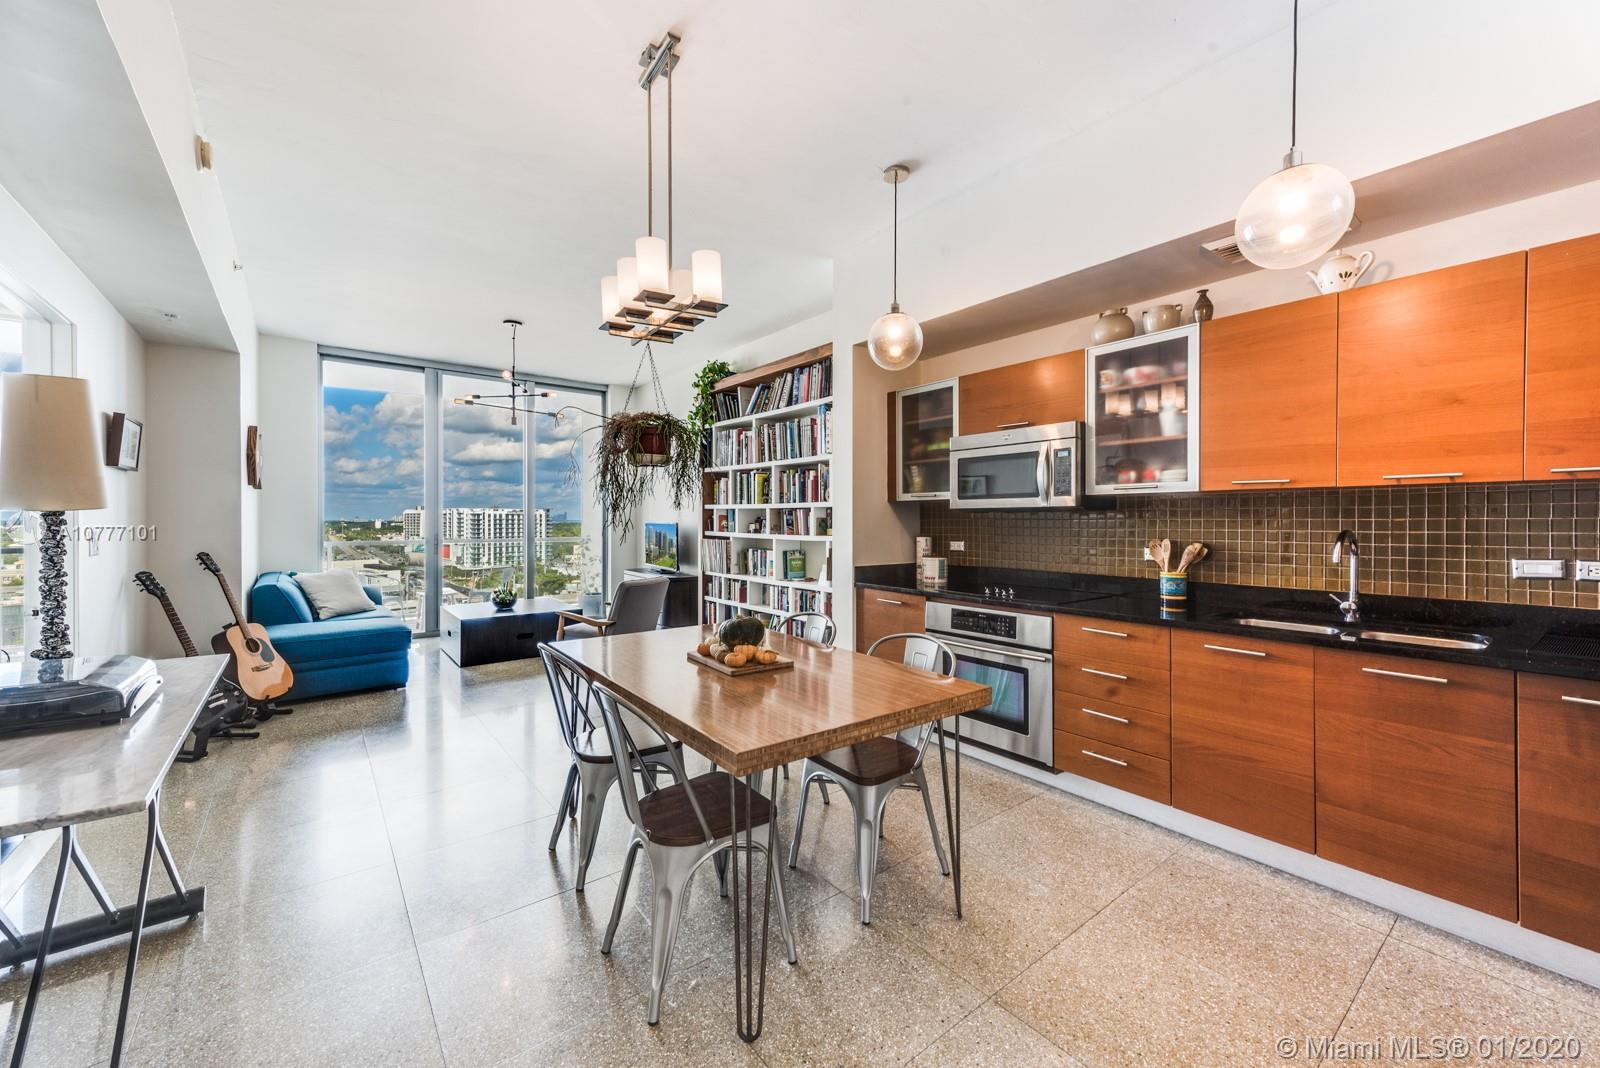 Stylish 1 Bed/1.5 Bath residence with bay views at coveted 2Midtown. This 12th Floor residence feat